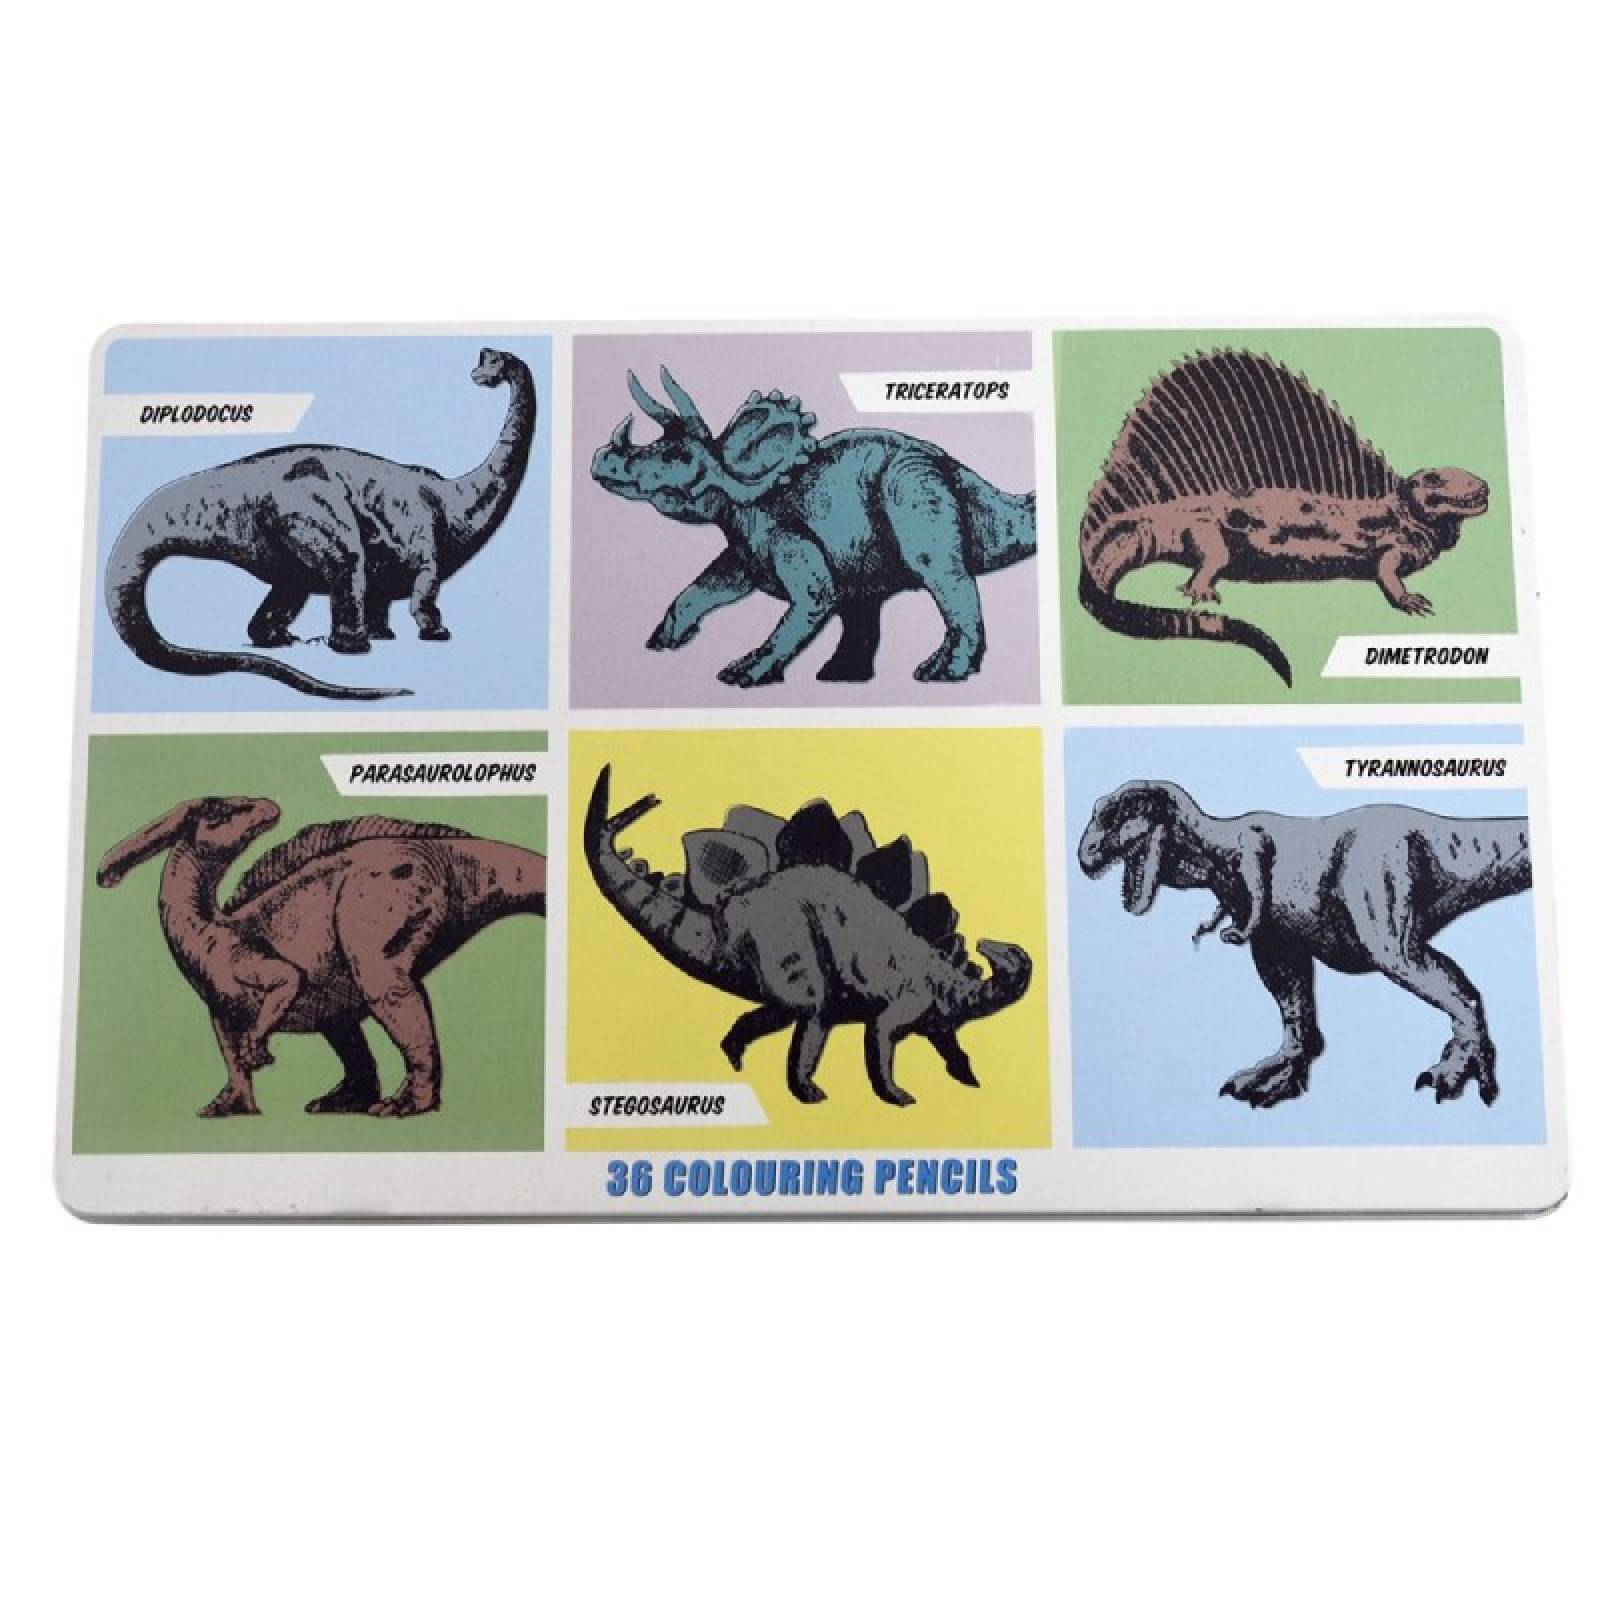 Dinosaurs - 36 Colouring Pencils In A Tin thumbnails